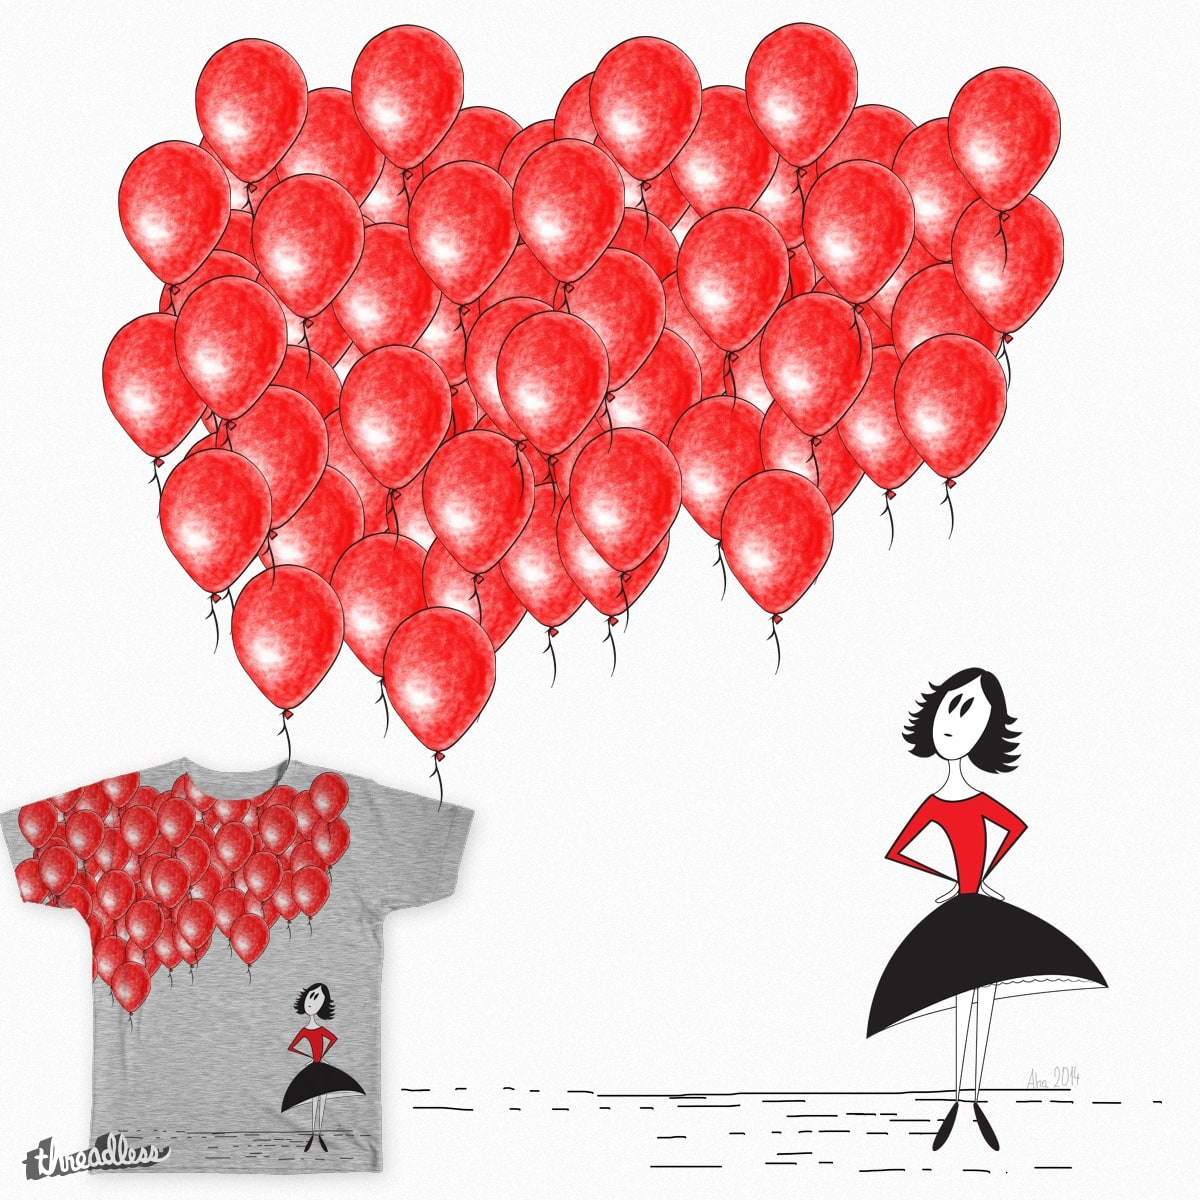 99 Red Balloons By Aha C On Threadless